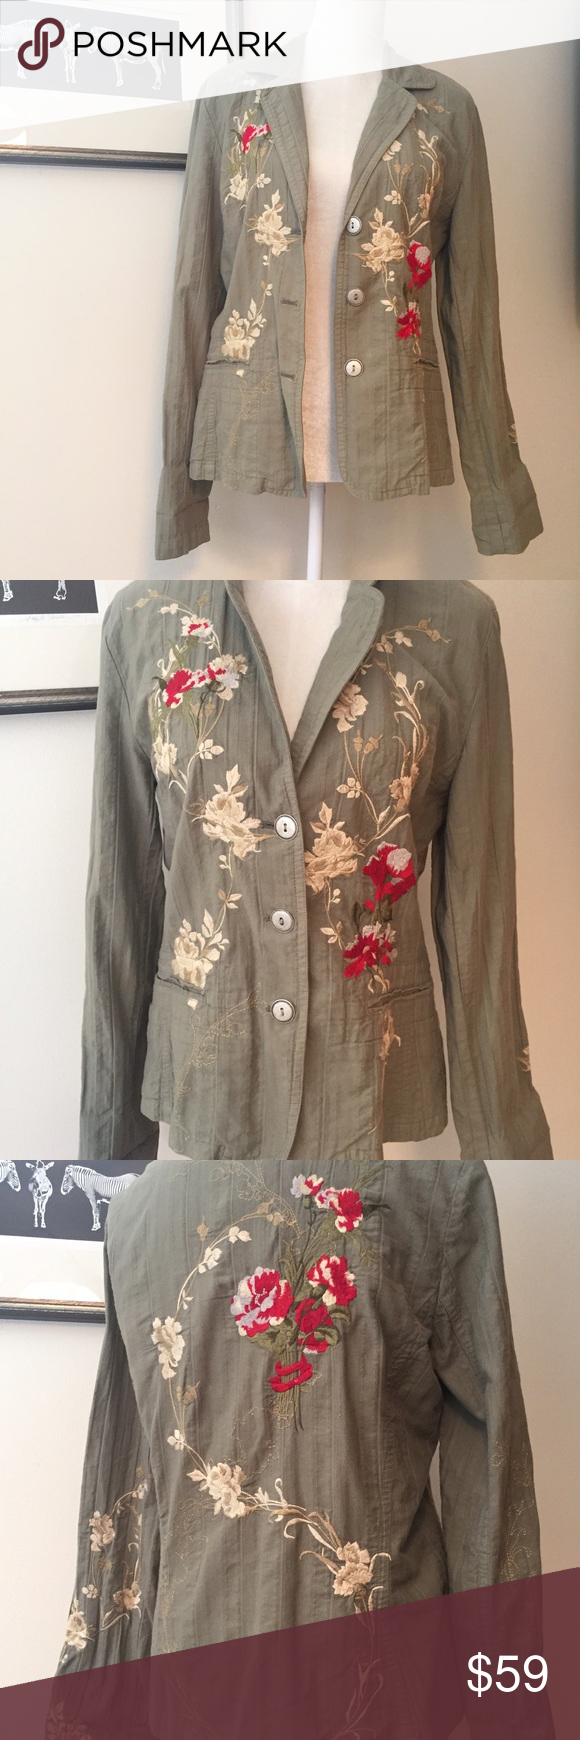 """Johnny Was Embroidered khaki blazer Large Flawless preloved condition. Textured pale olive blazer with silver tone buttons and embroidery. Pockets still sewn shut. 100% cotton. Size large. 17.5"""" shoulders. 25"""" sleeve. 24.5"""" length. 40"""" max bust. Johnny Was Jackets & Coats Blazers"""